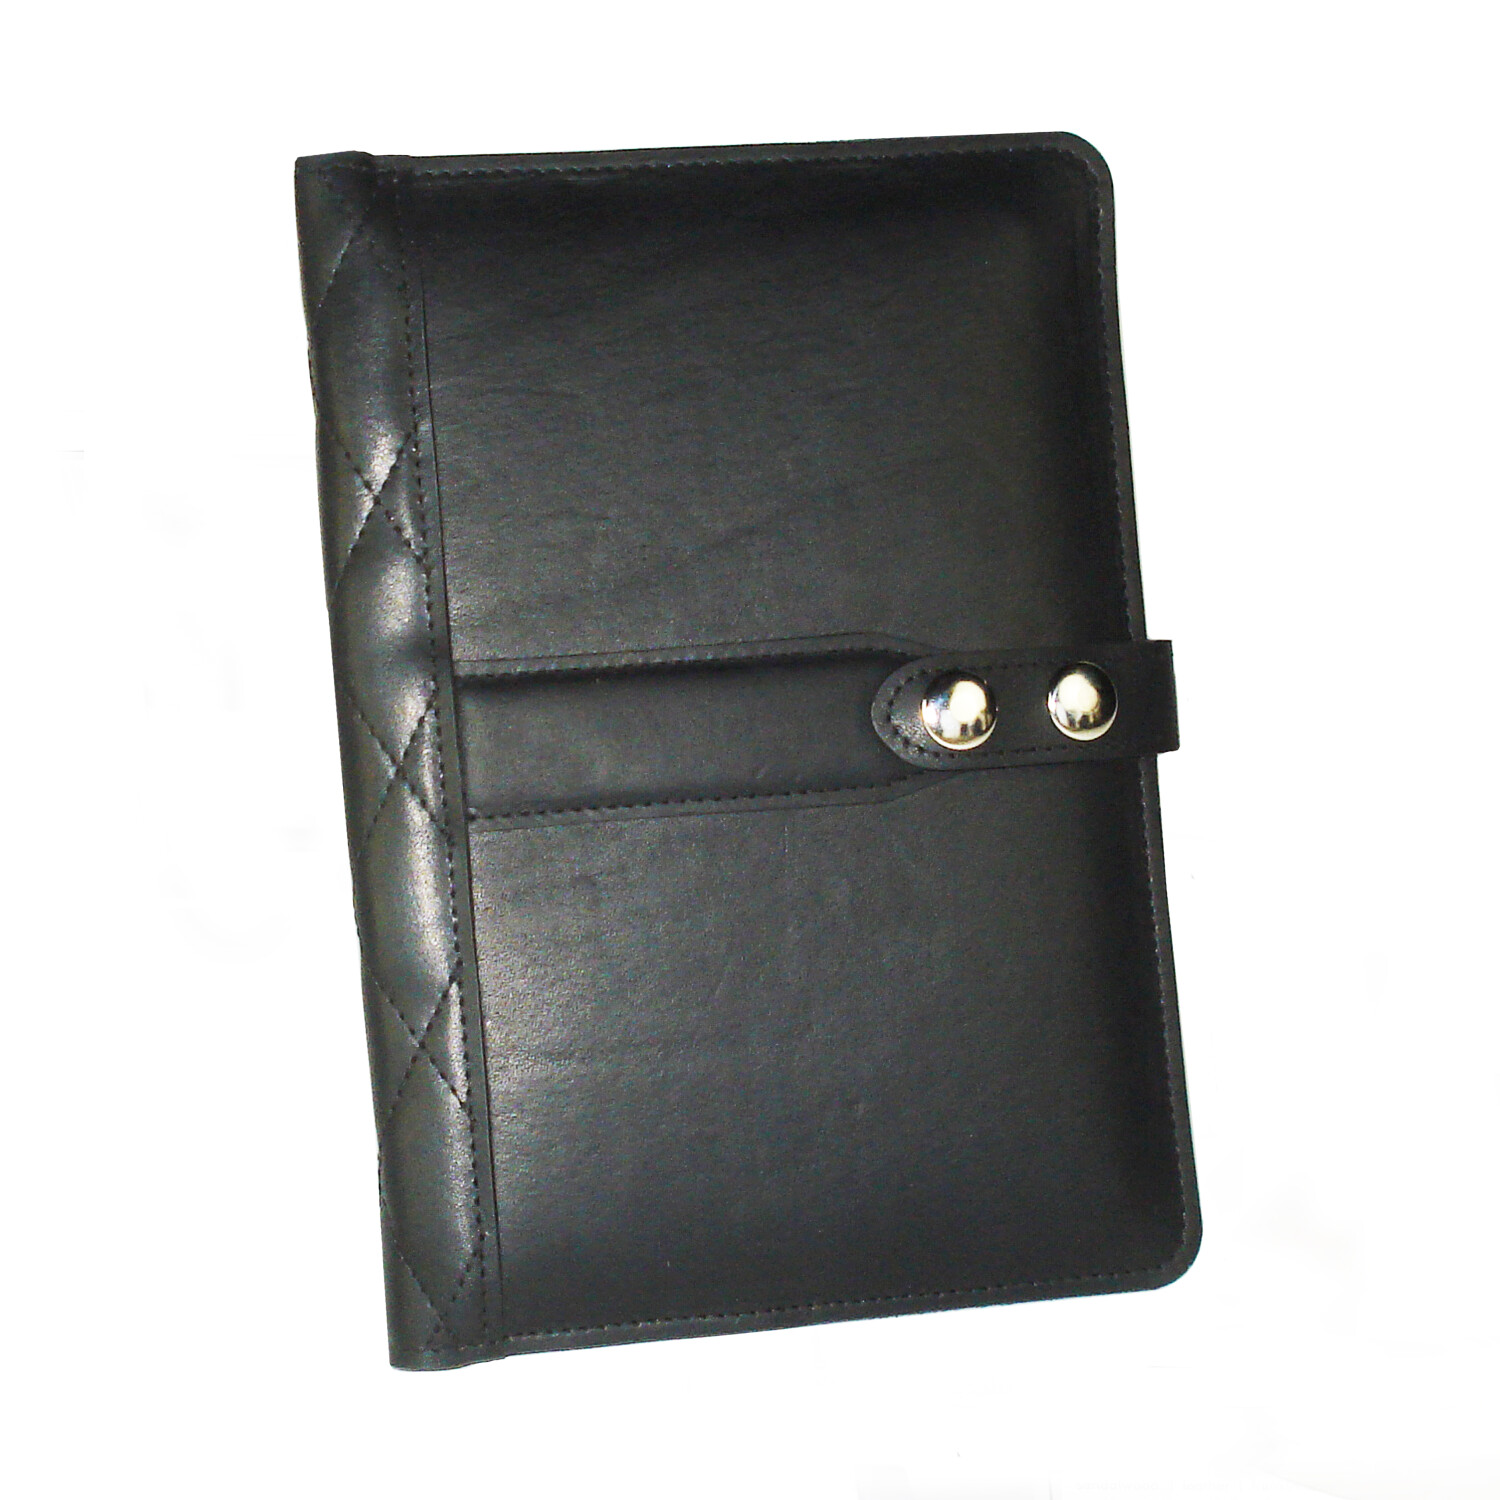 Steel Timber Leather - Small Executive Tablet Folio - Full-Grain Leather Small Portfolio Handcrafted in St. Louis - Black